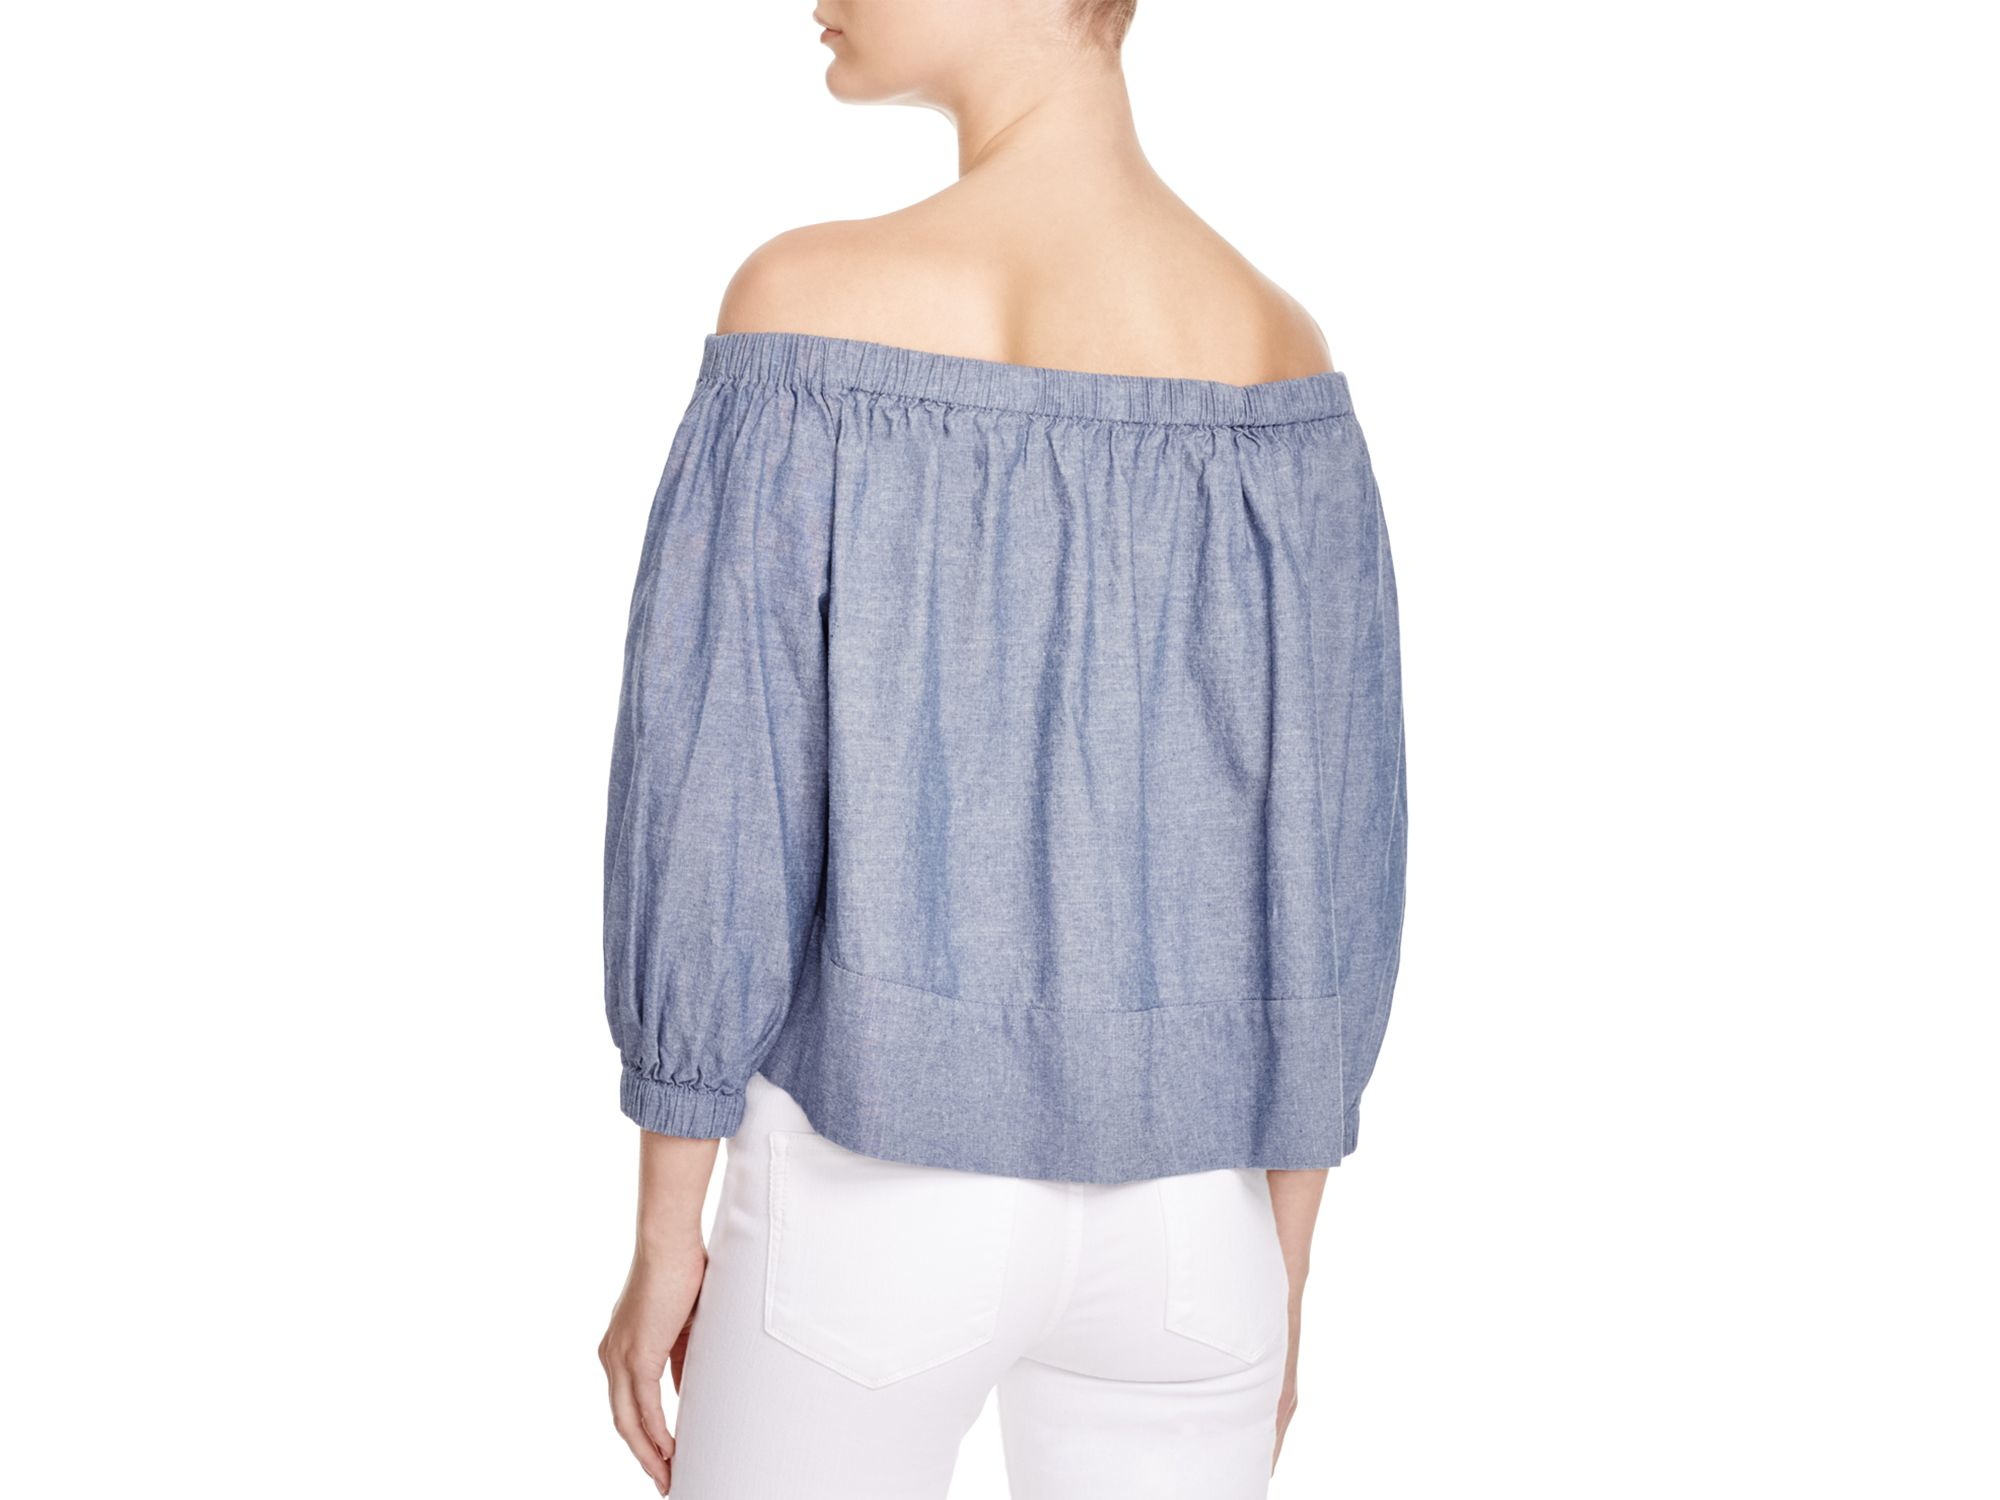 Cynthia rowley chambray off the shoulder top in blue lyst for Chambray top